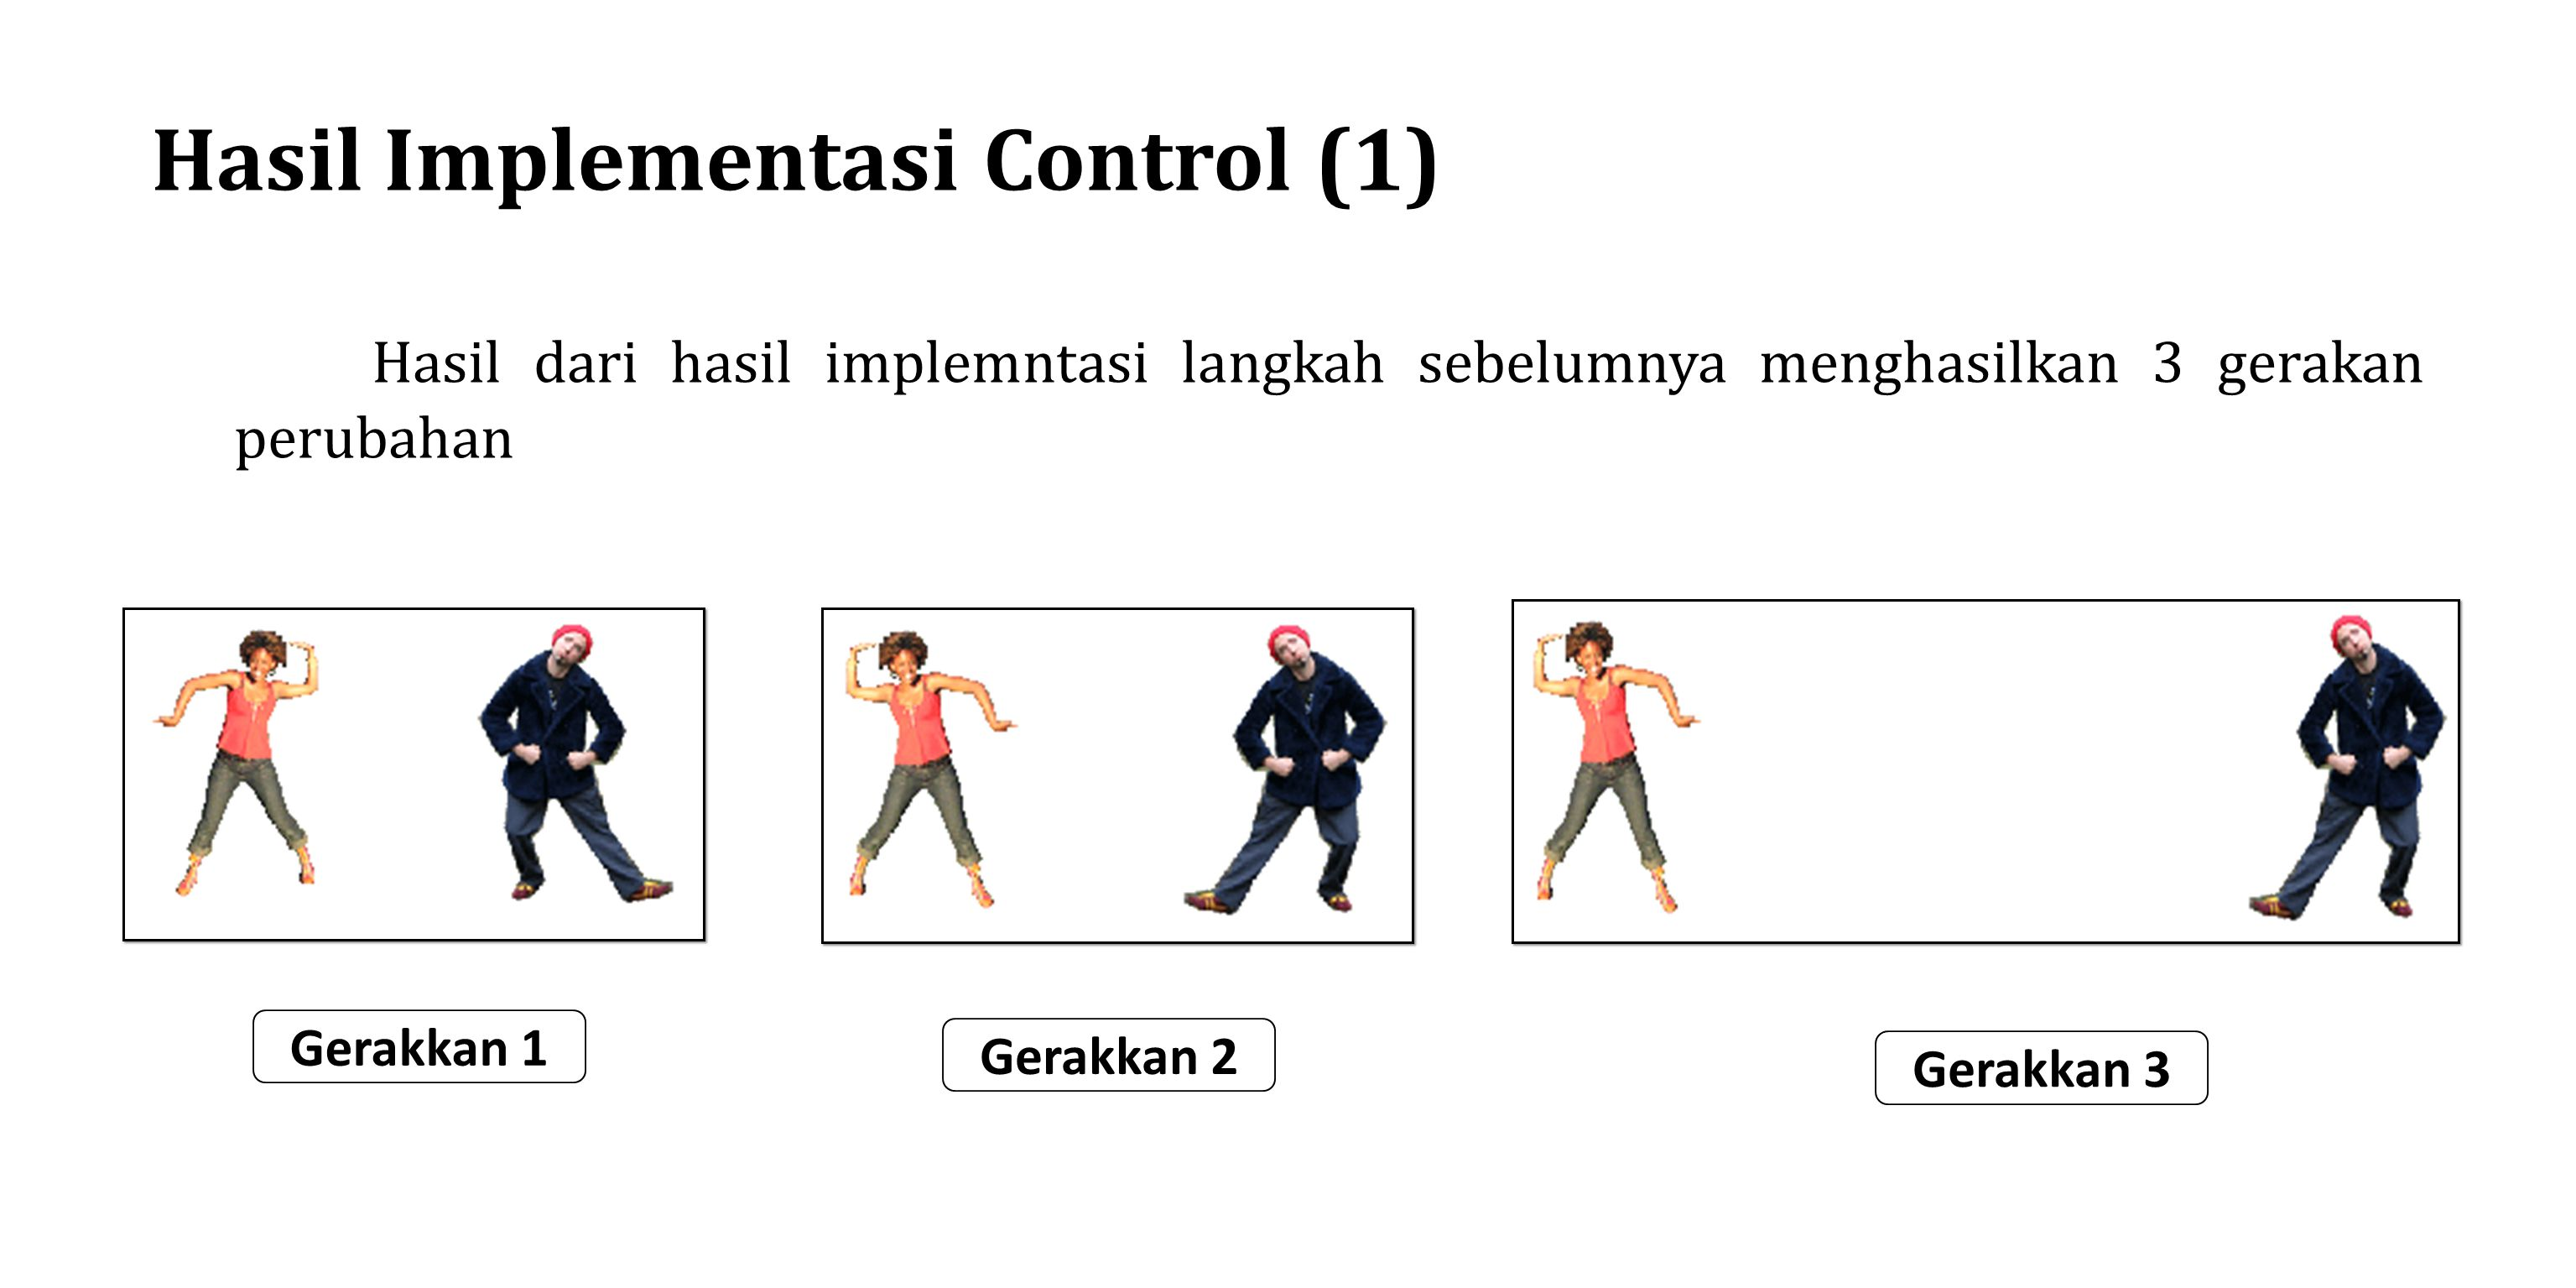 Hasil Implementasi Control (1)